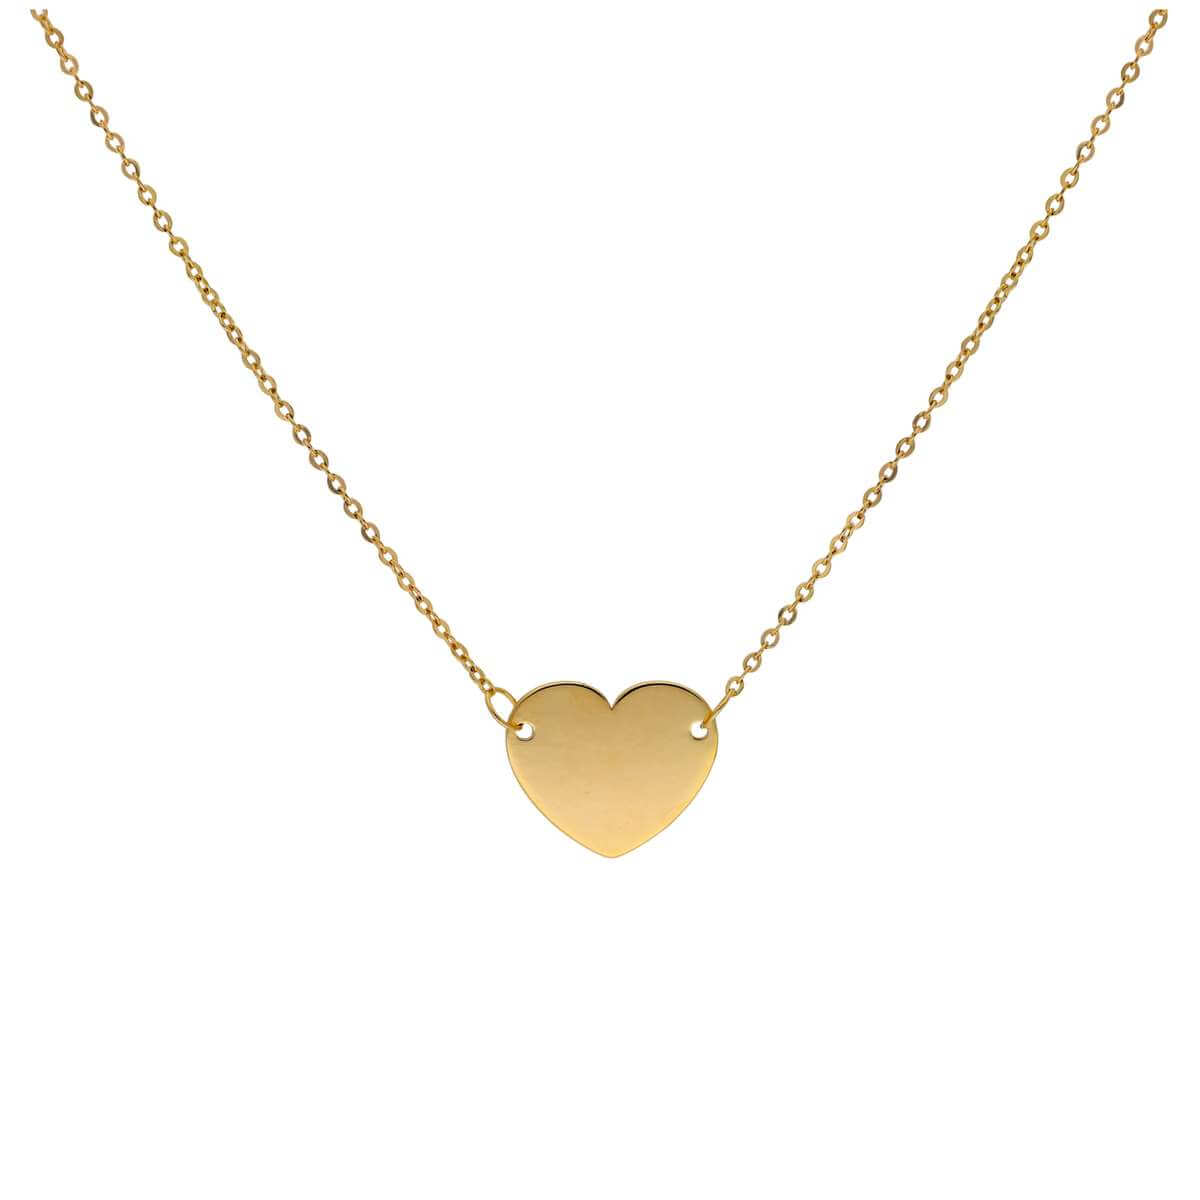 Fine 9ct Gold Plain Engravable Heart Necklace 16 Inches